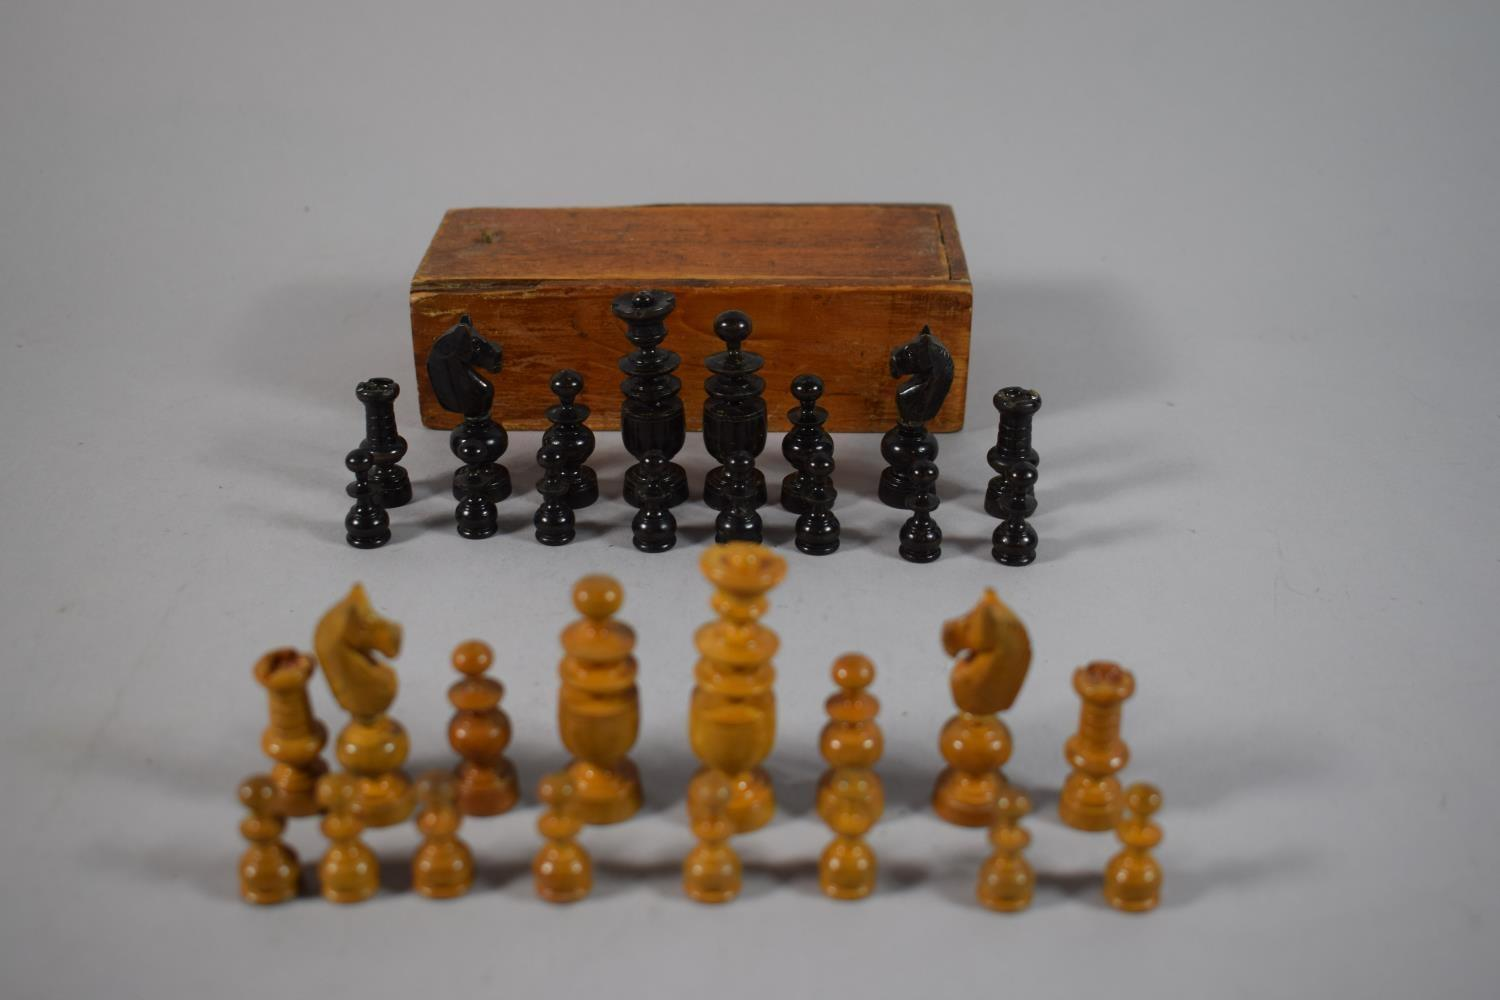 Lot 9 - A Small Wooden Chess Set in Box, King 5.5cms, Complete